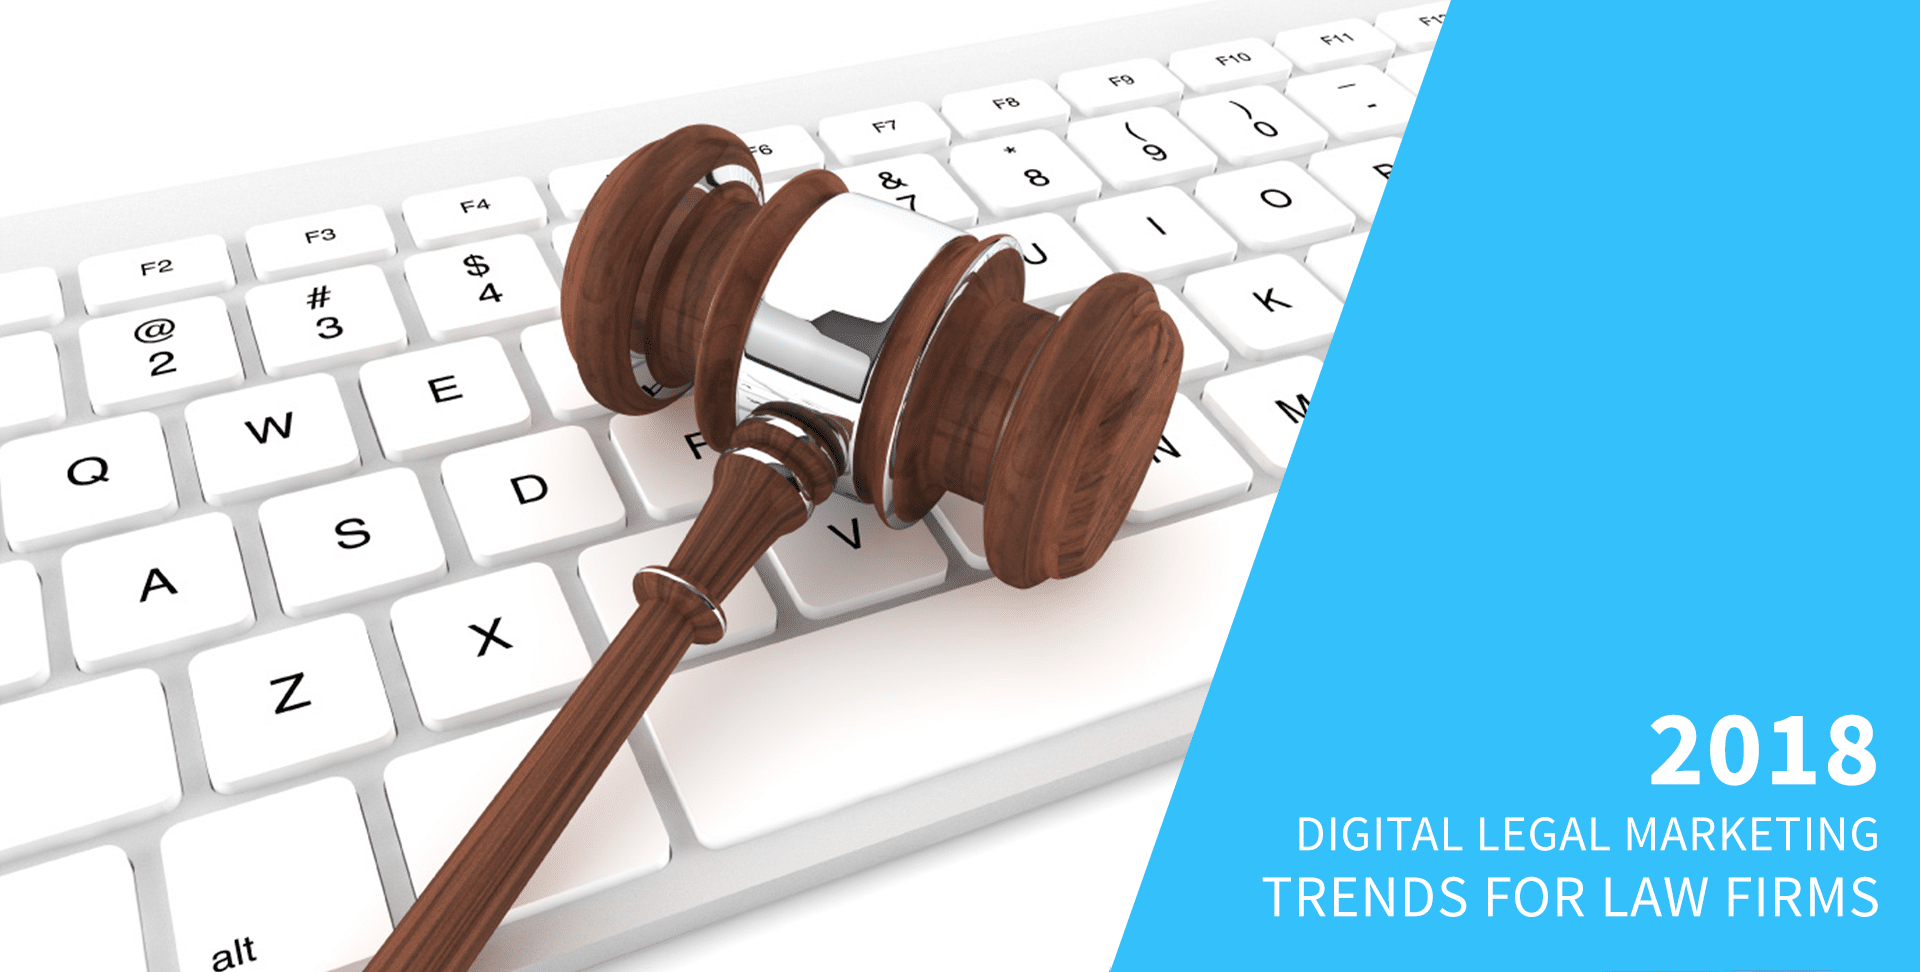 2018 Digital Legal Marketing Trends For Law Firms